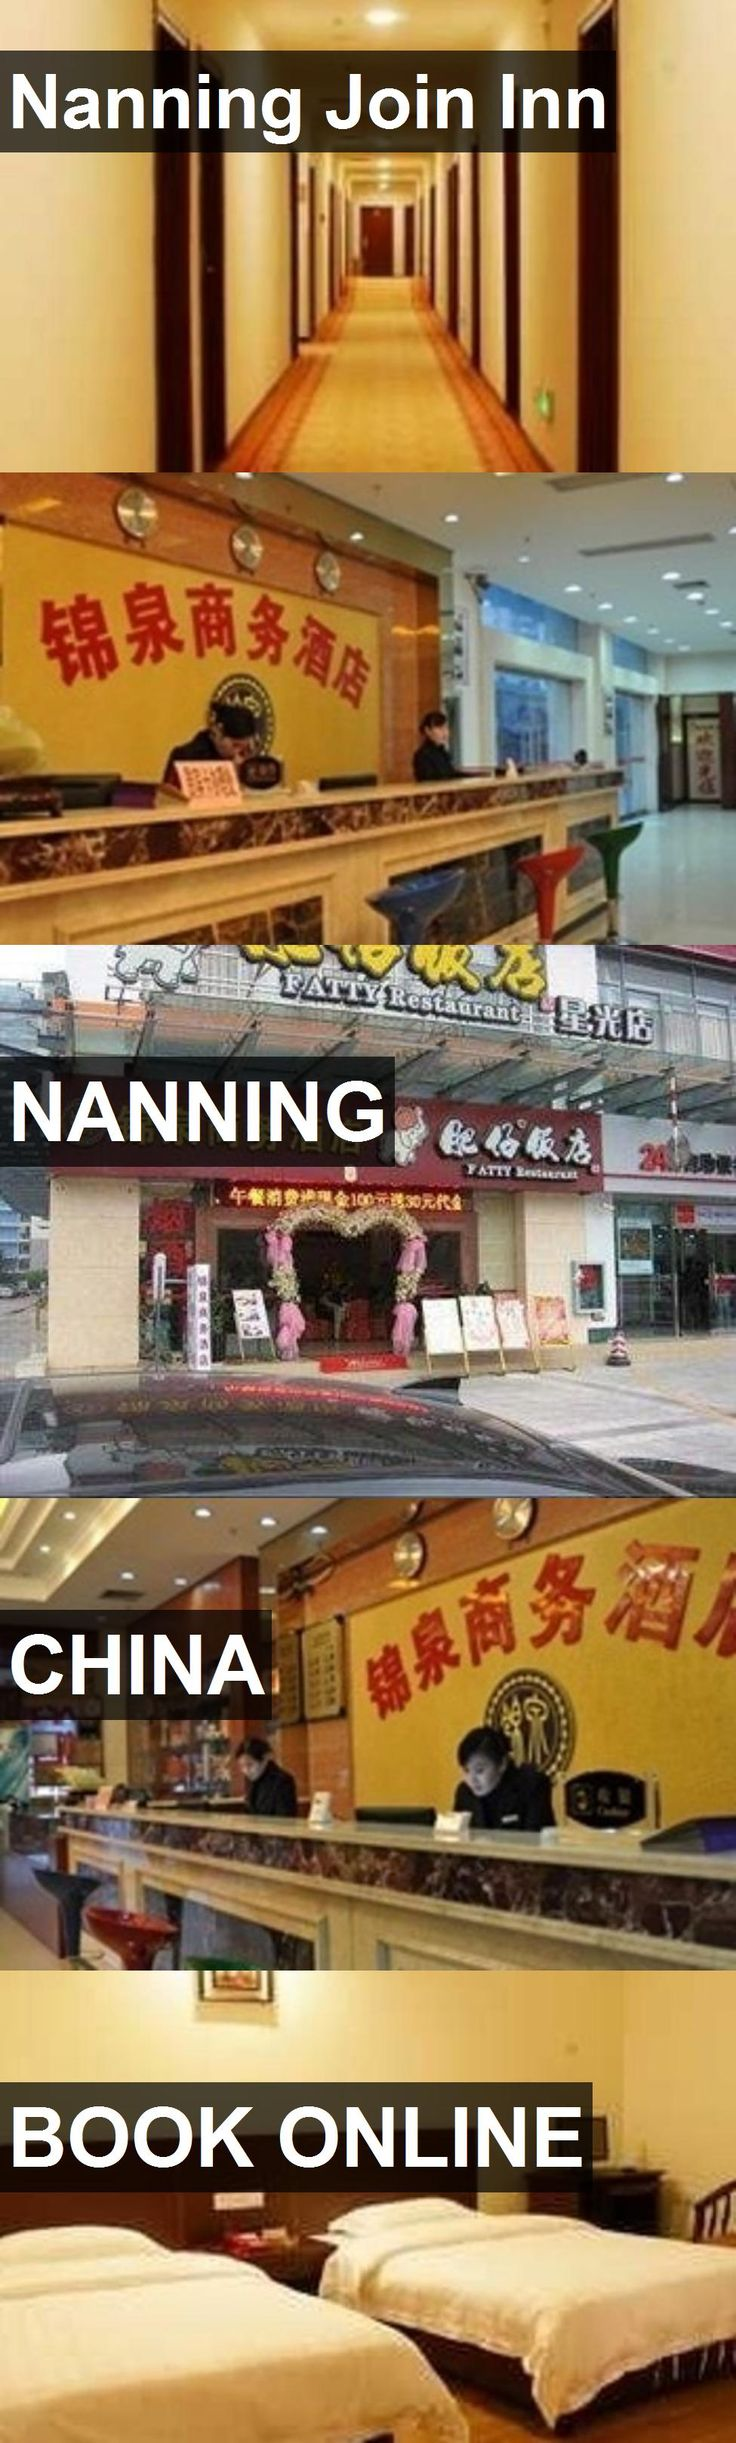 Hotel Nanning Join Inn in Nanning, China. For more information, photos, reviews and best prices please follow the link. #China #Nanning #travel #vacation #hotel